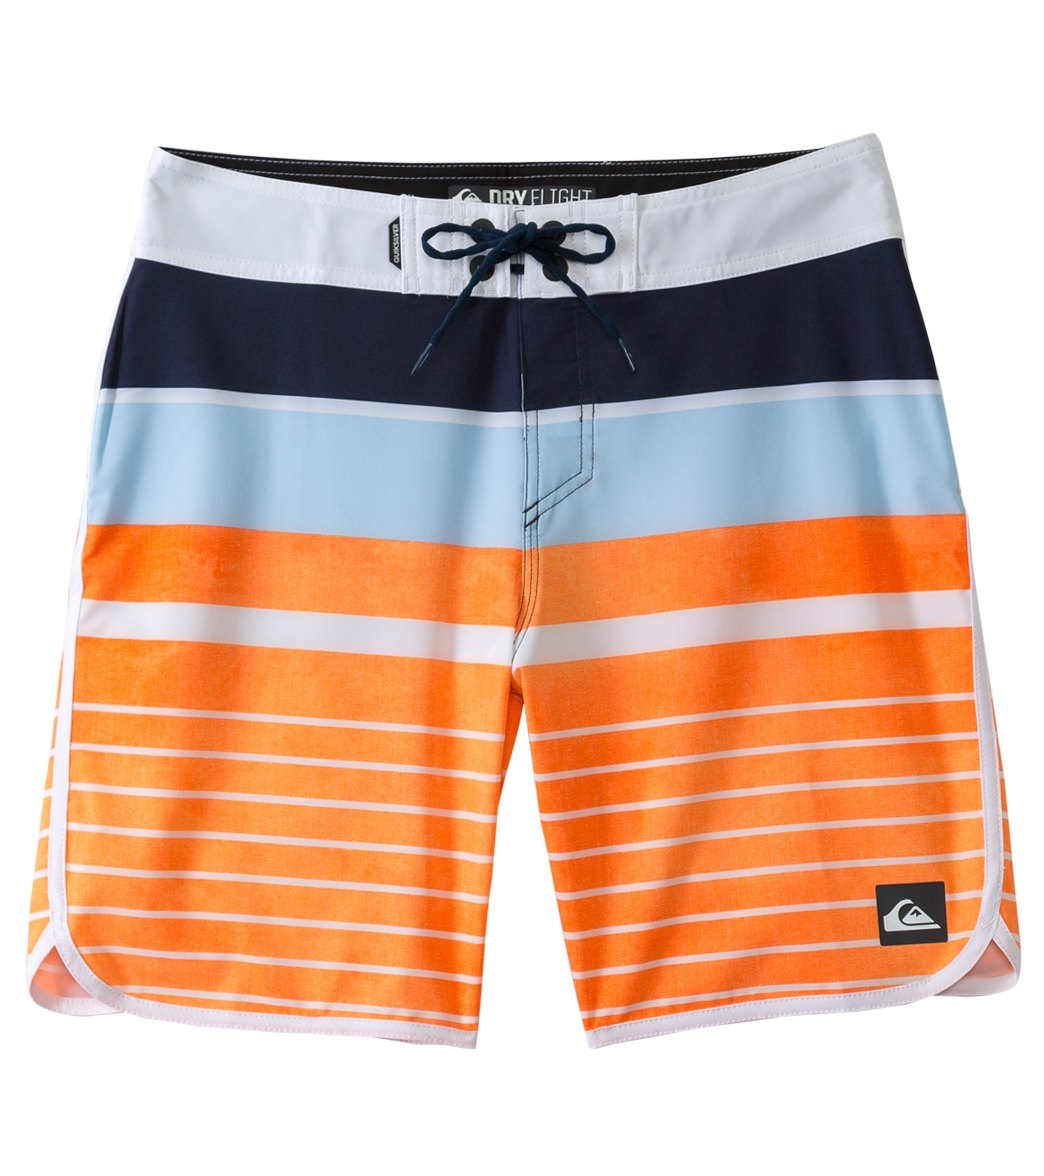 41cbe84c9c Quiksilver Men's AG47 Everyday Scallop 20 Boardshort at SwimOutlet ...